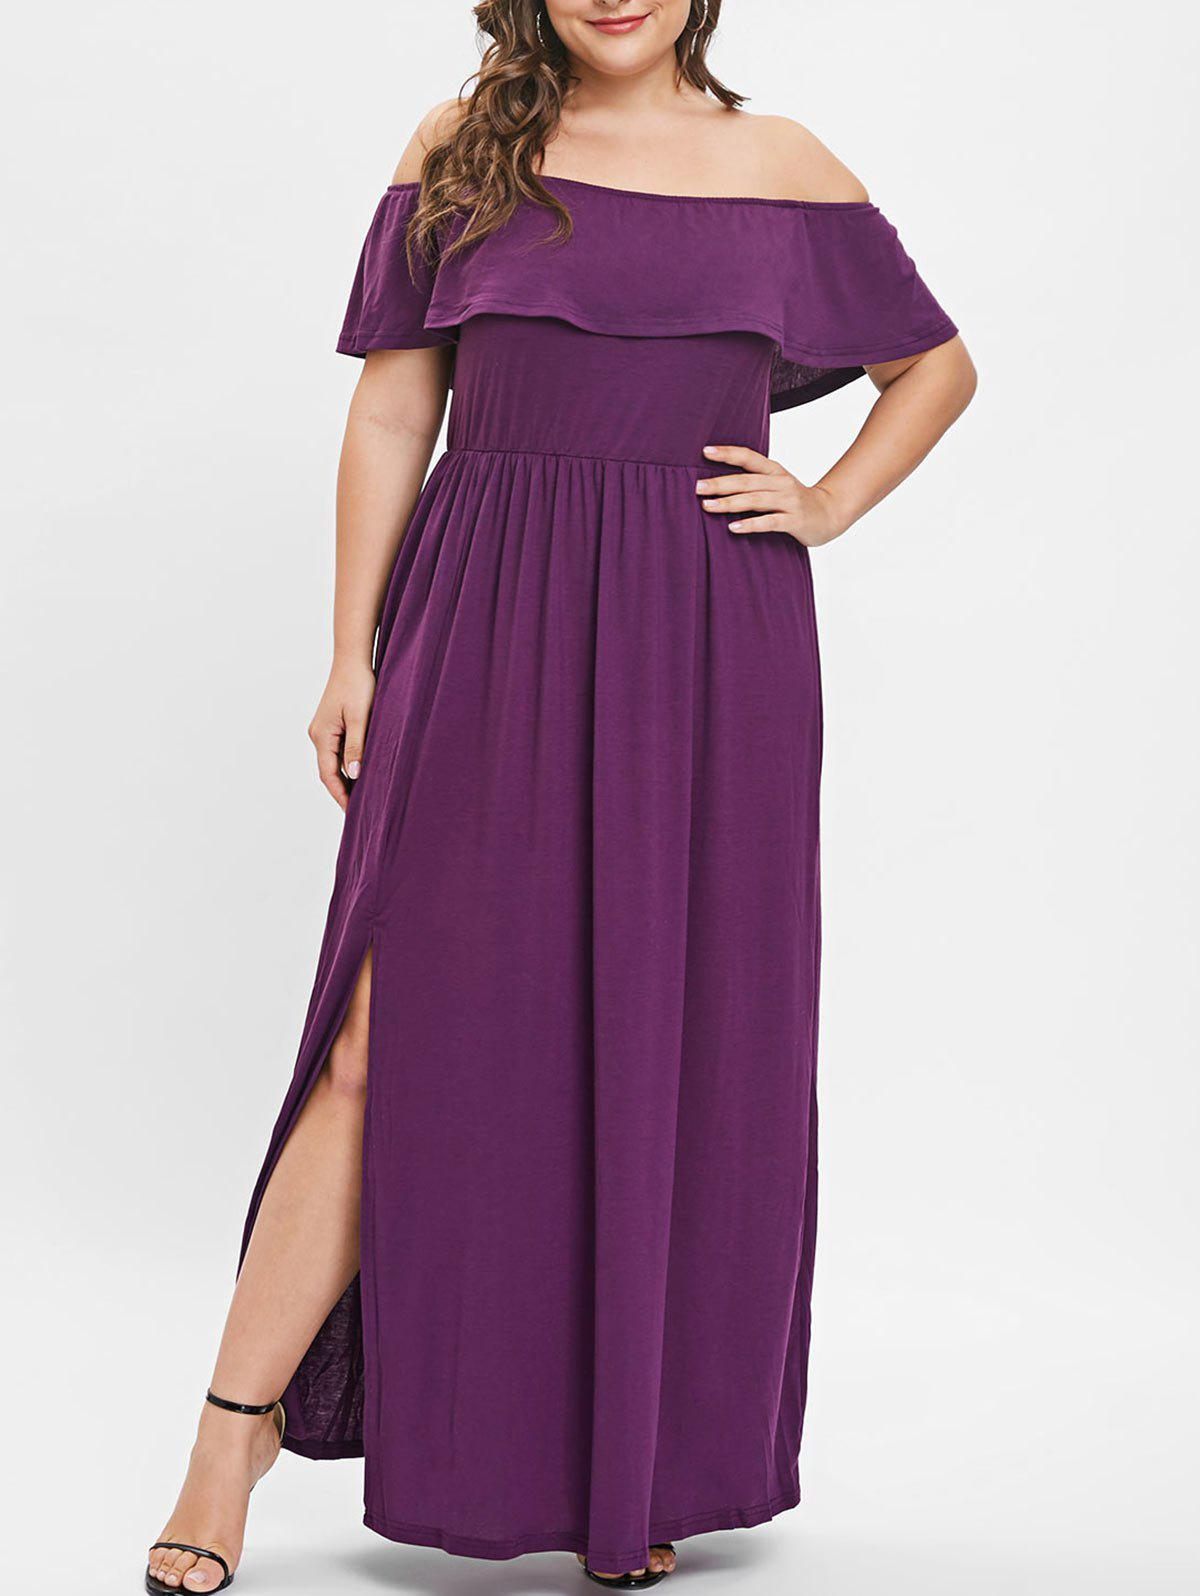 45% OFF] Plus Size Off The Shoulder Maxi Dress | Rosegal